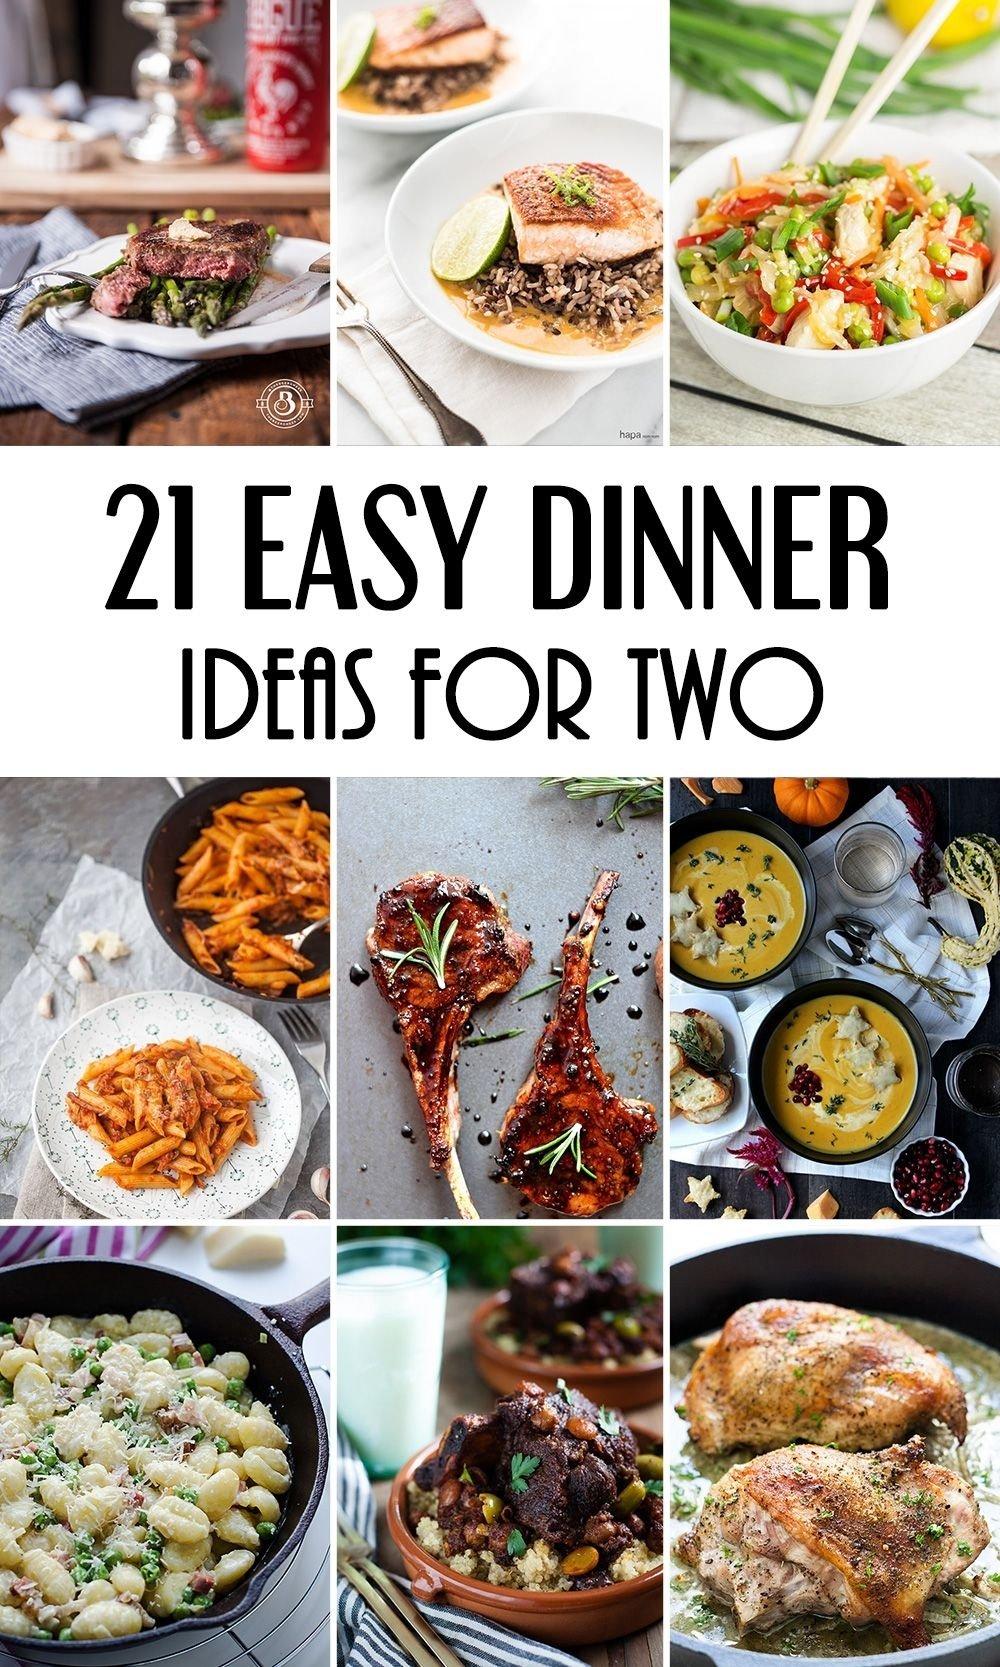 10 Fabulous Easy Meal Ideas For Dinner 21 easy dinner ideas for two that will impress your loved one 14 2020